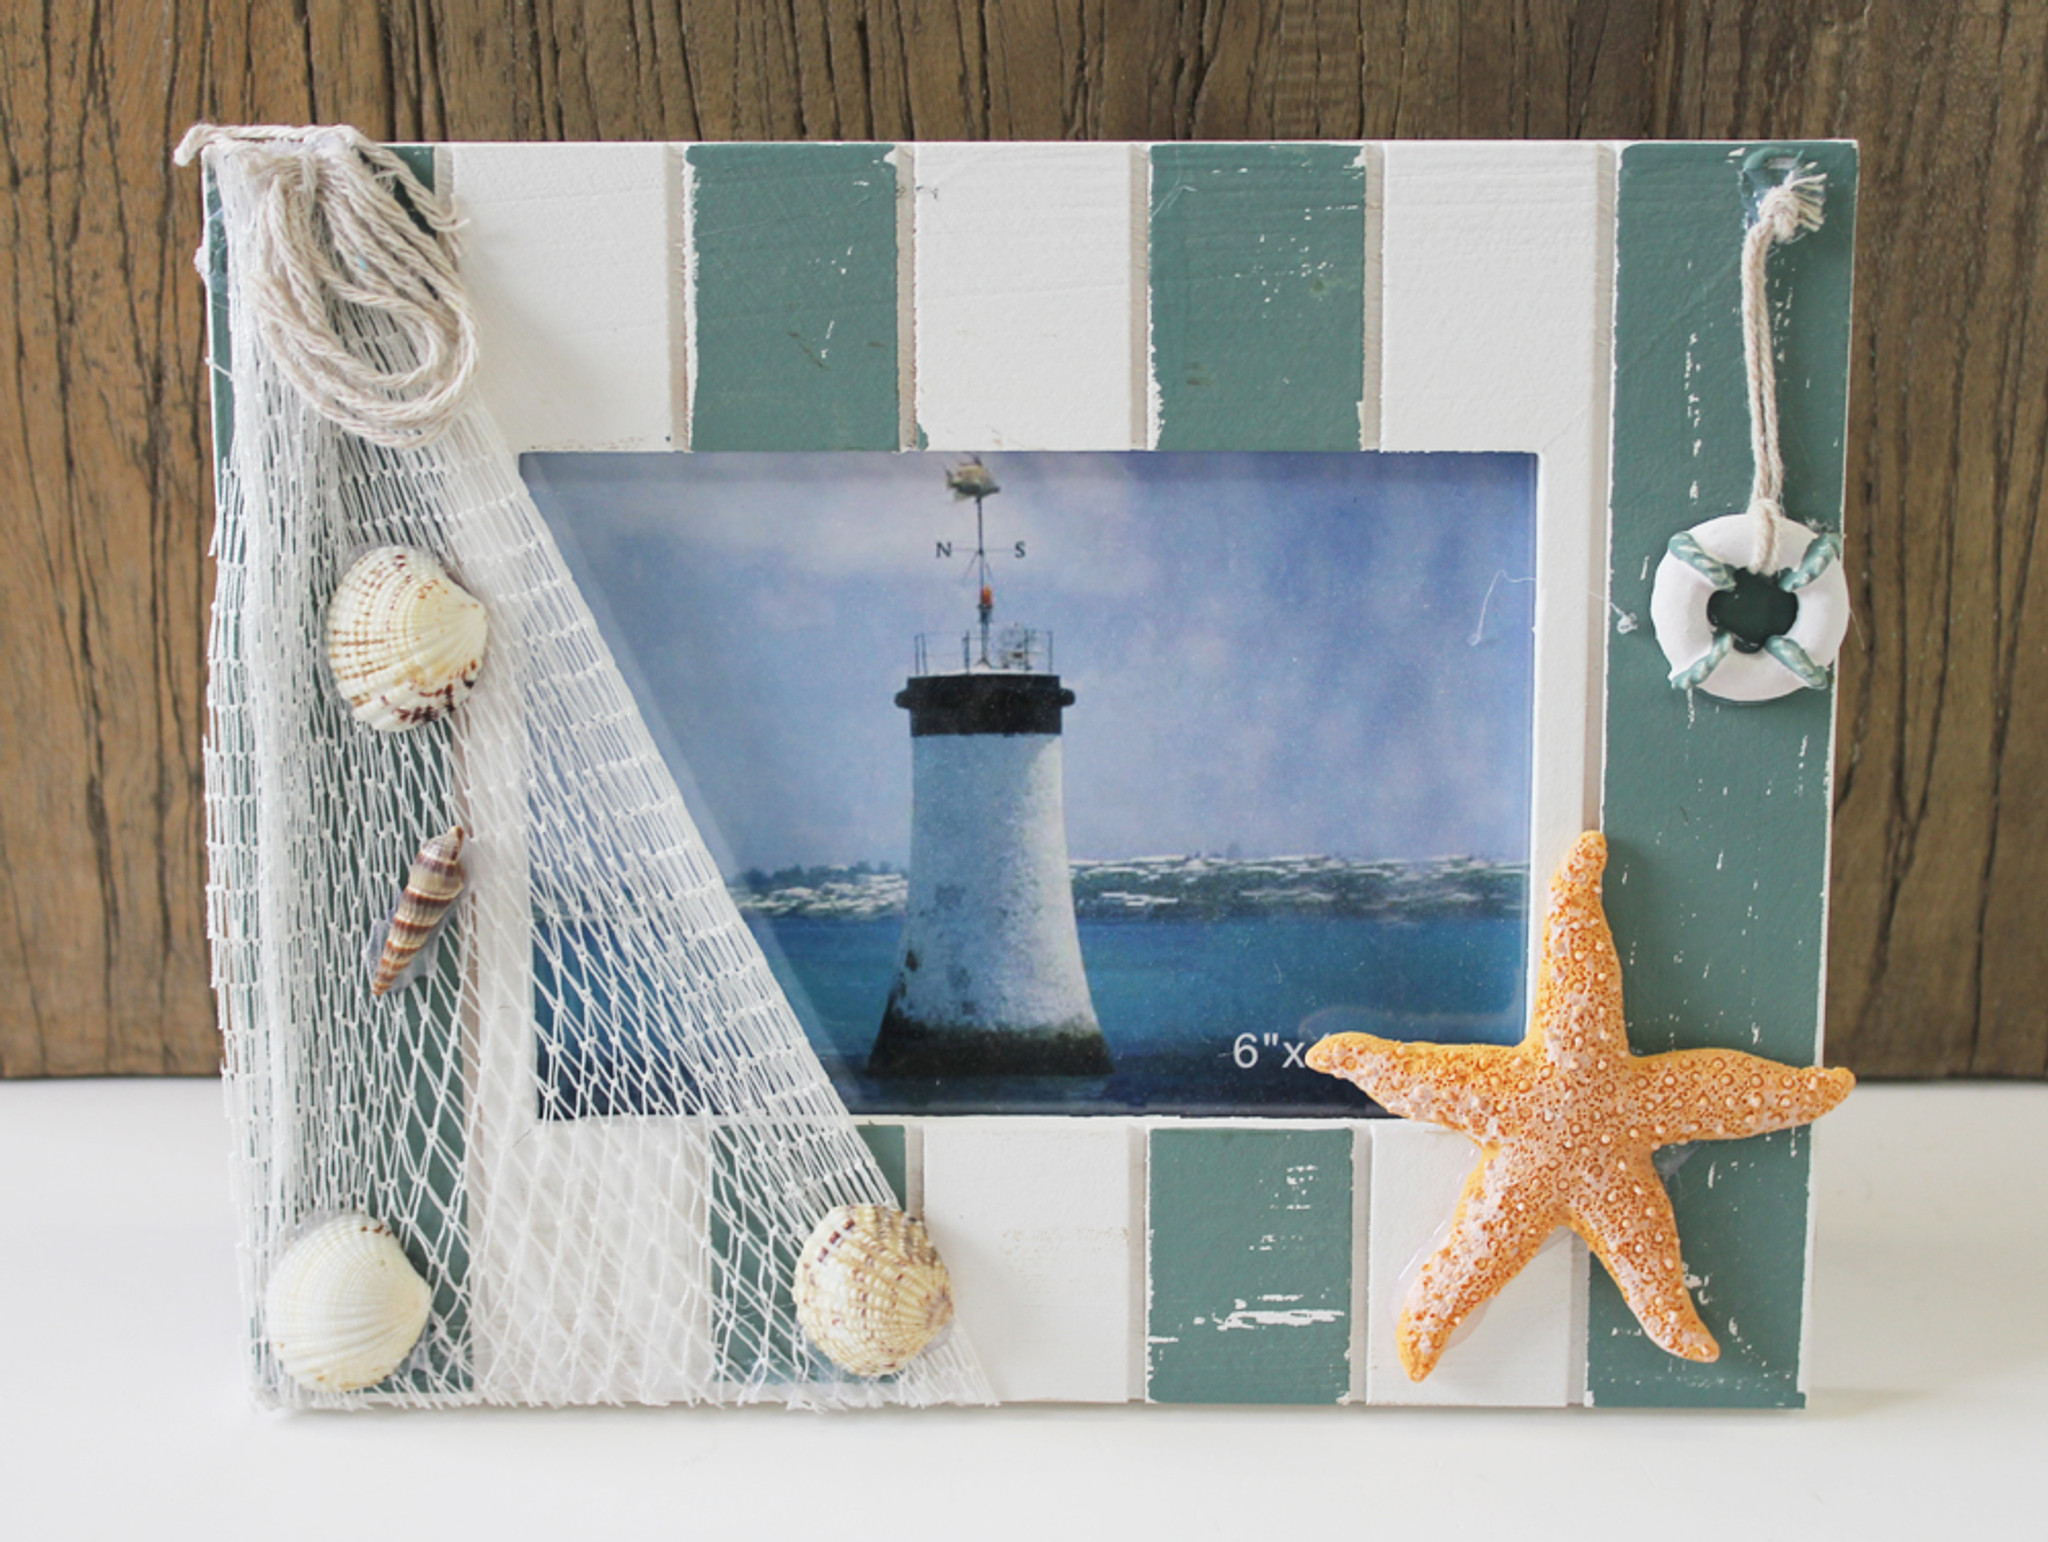 Nautical 4x6 Picture Frame with Fish Net - Coastal Frames & Albums ...